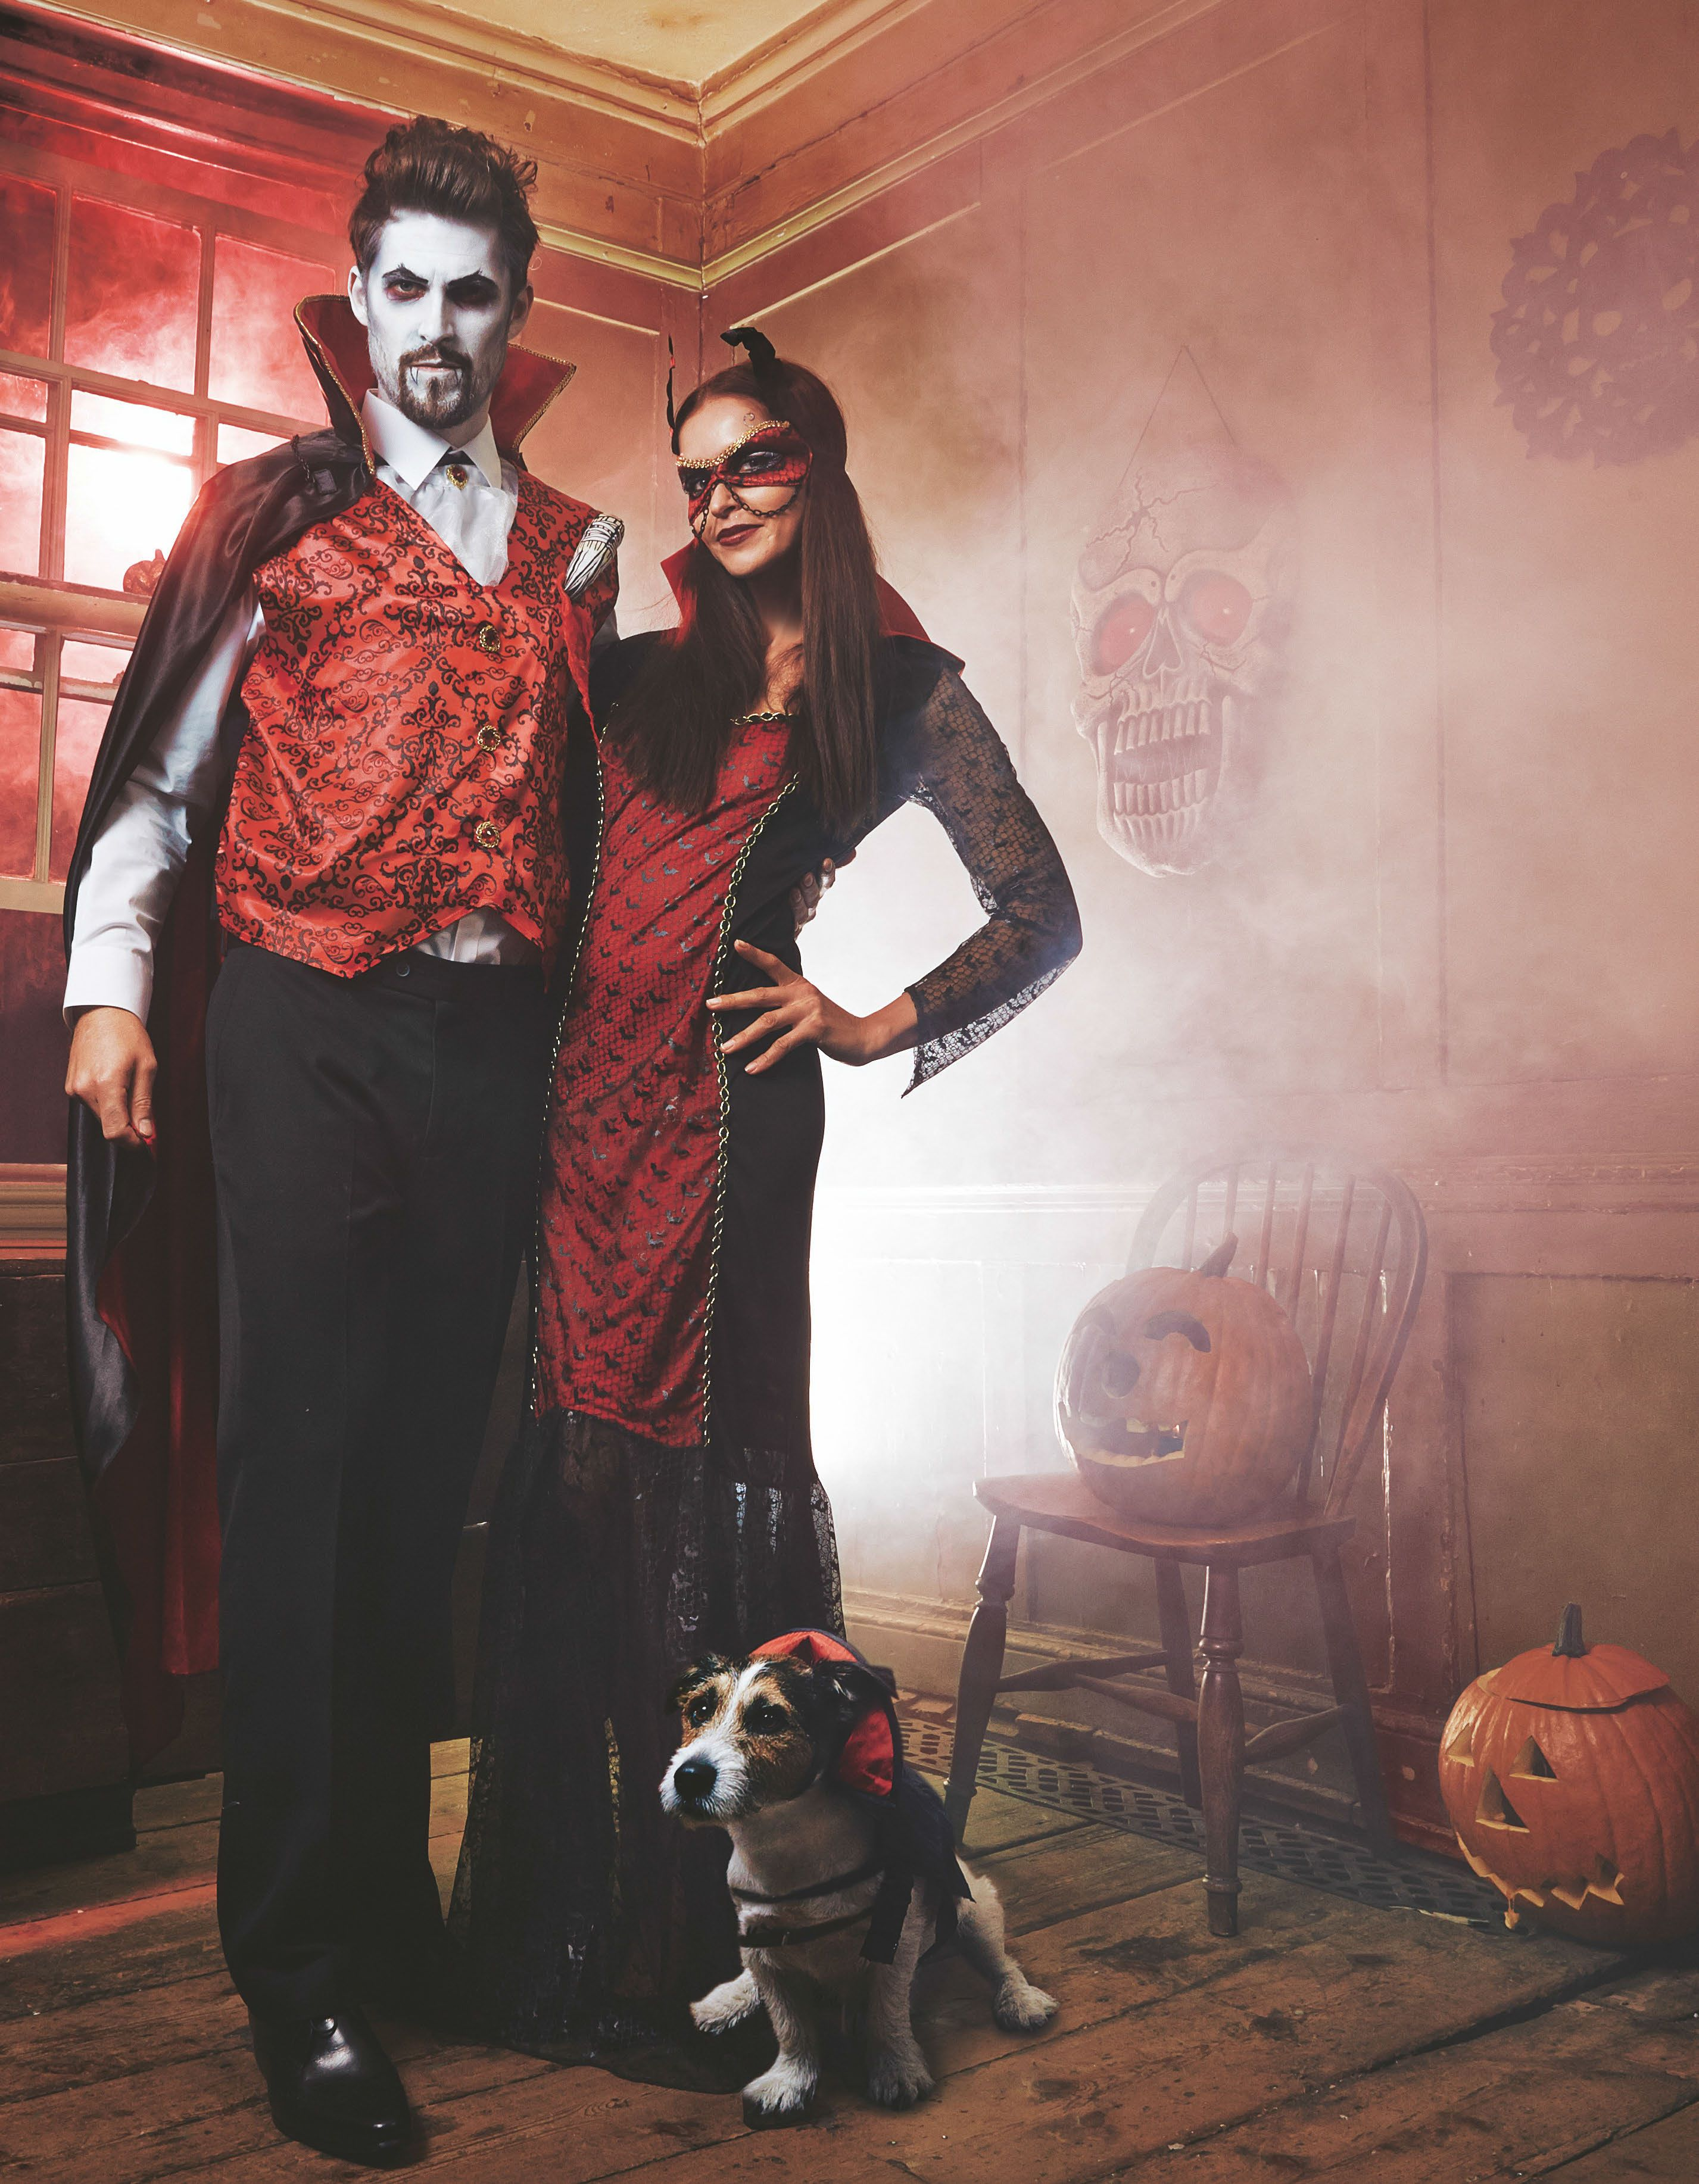 Our Spooktacular Vampire Costumes Are Great For The Whole Family